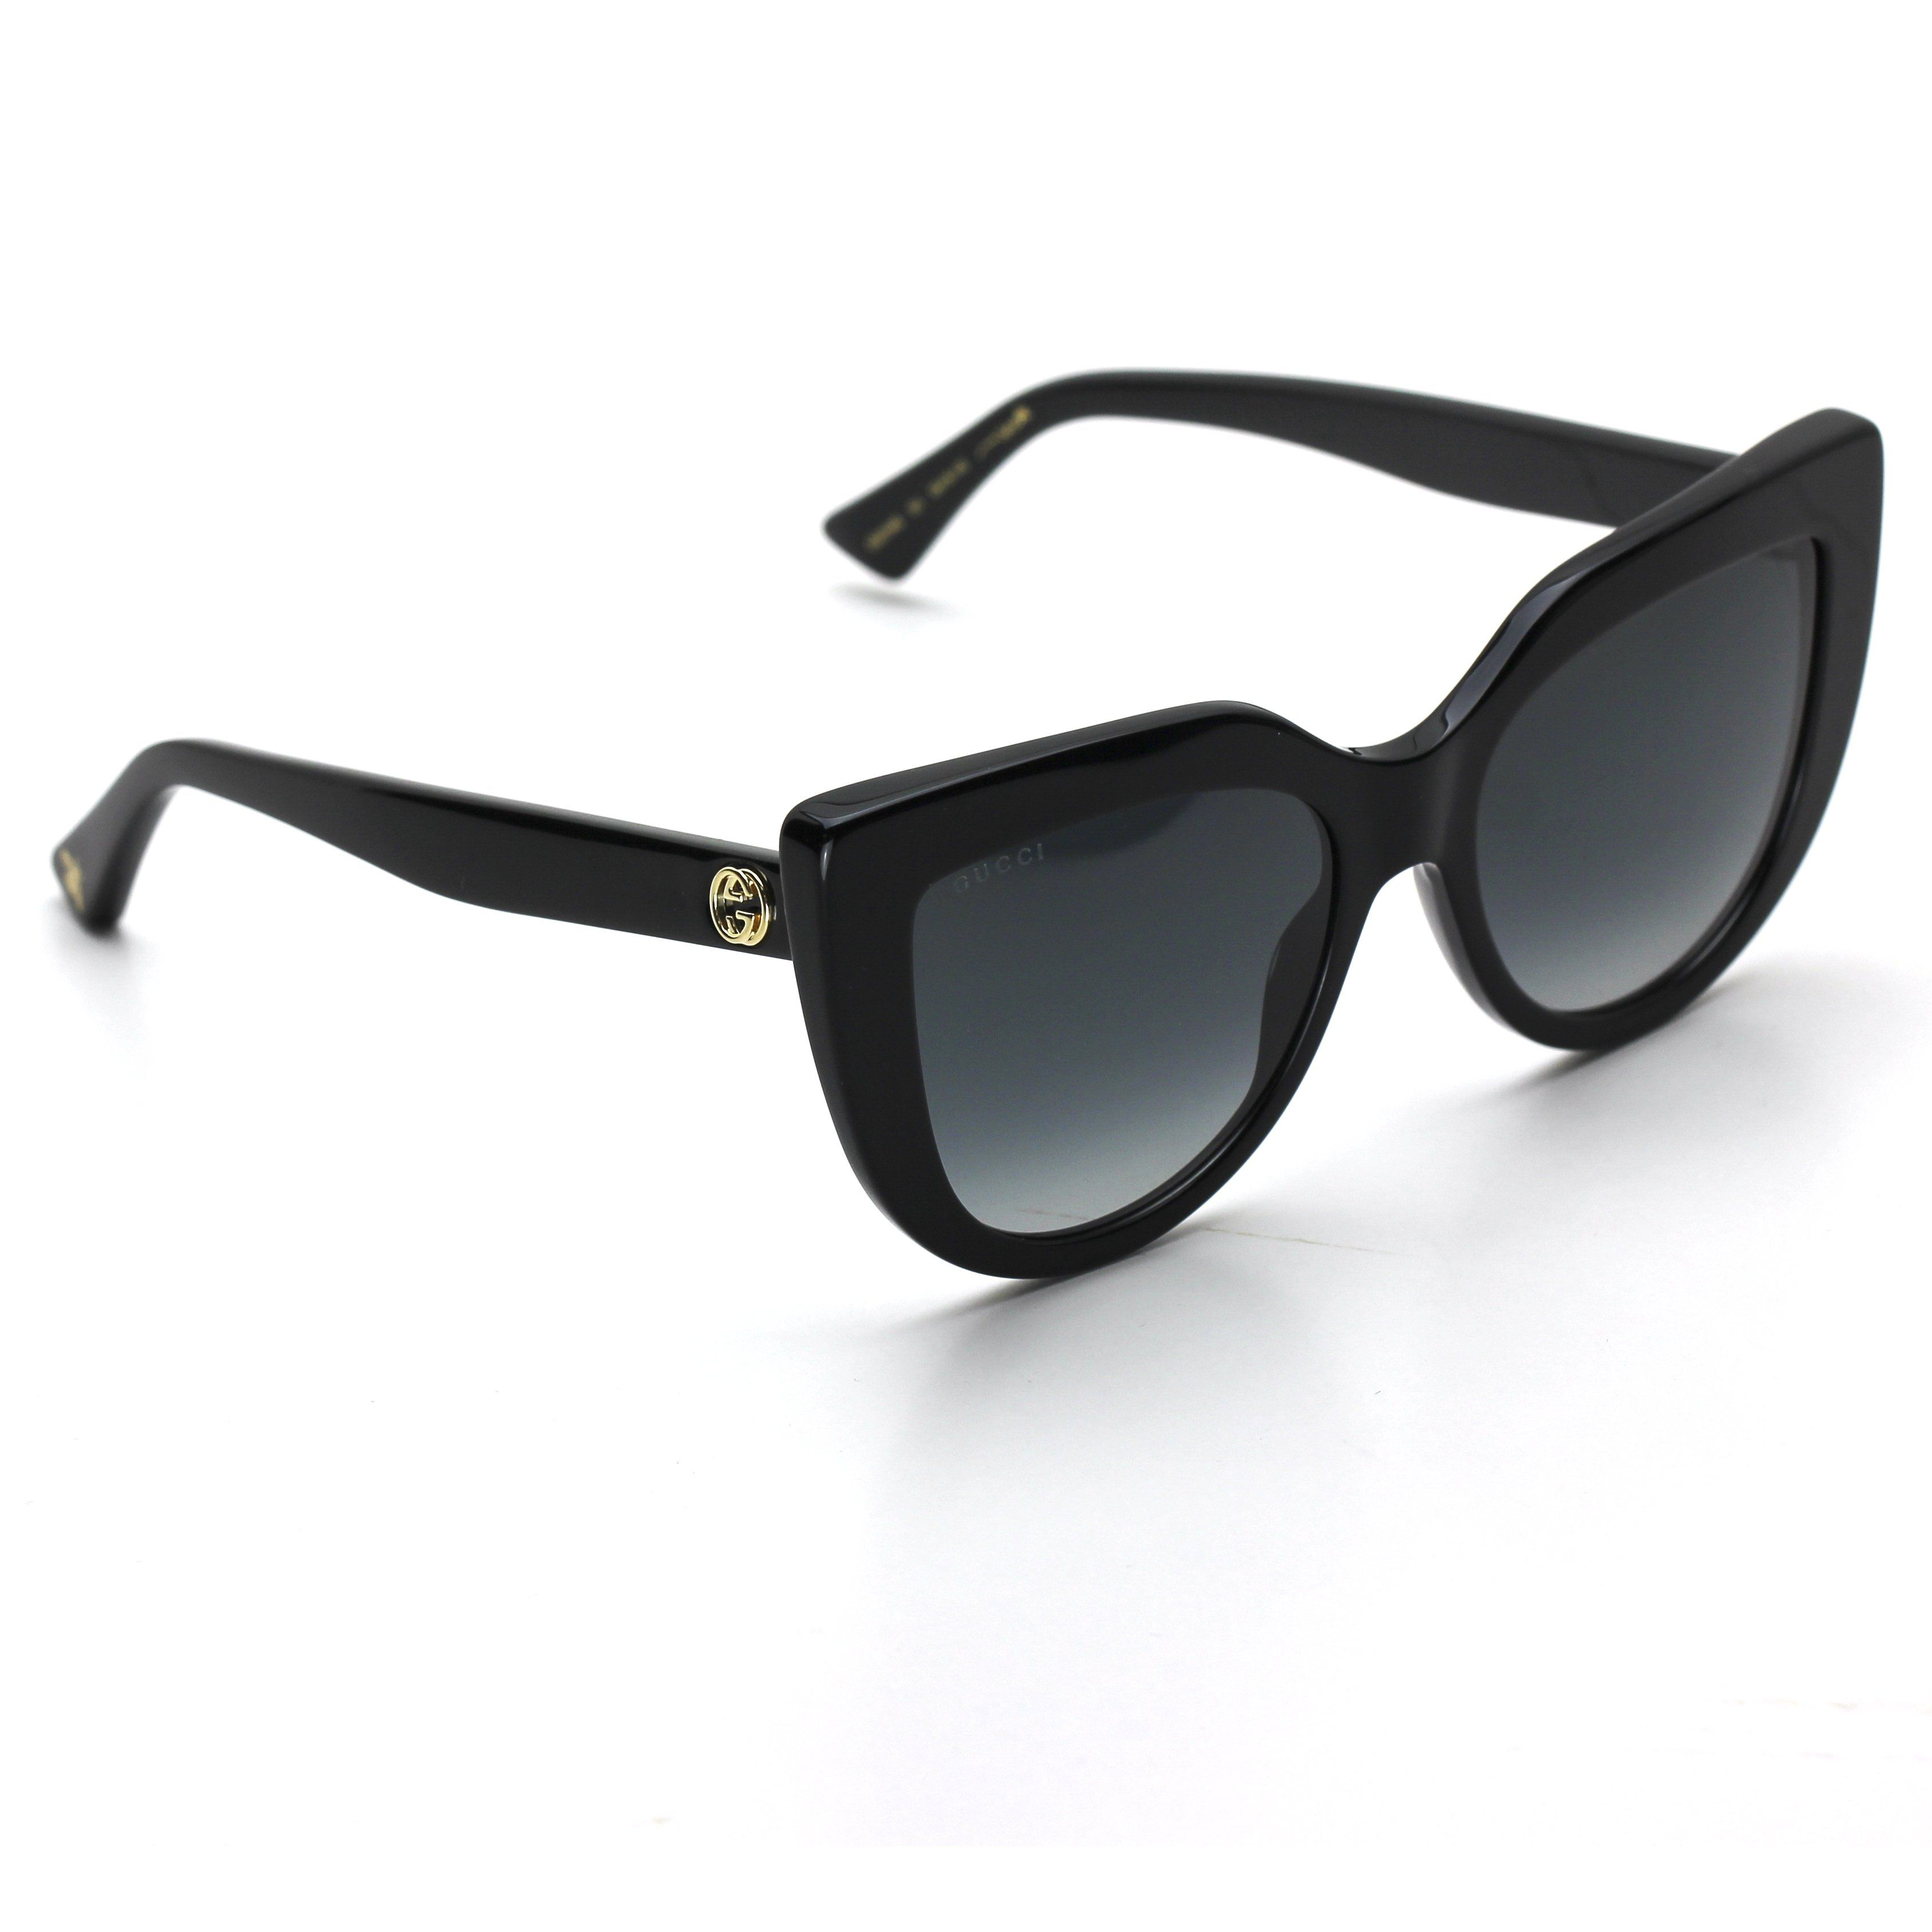 19152f03a Gucci 0164S Cat Eye Acetate Sunglasses Black Frame with Gray Gradient Lenses